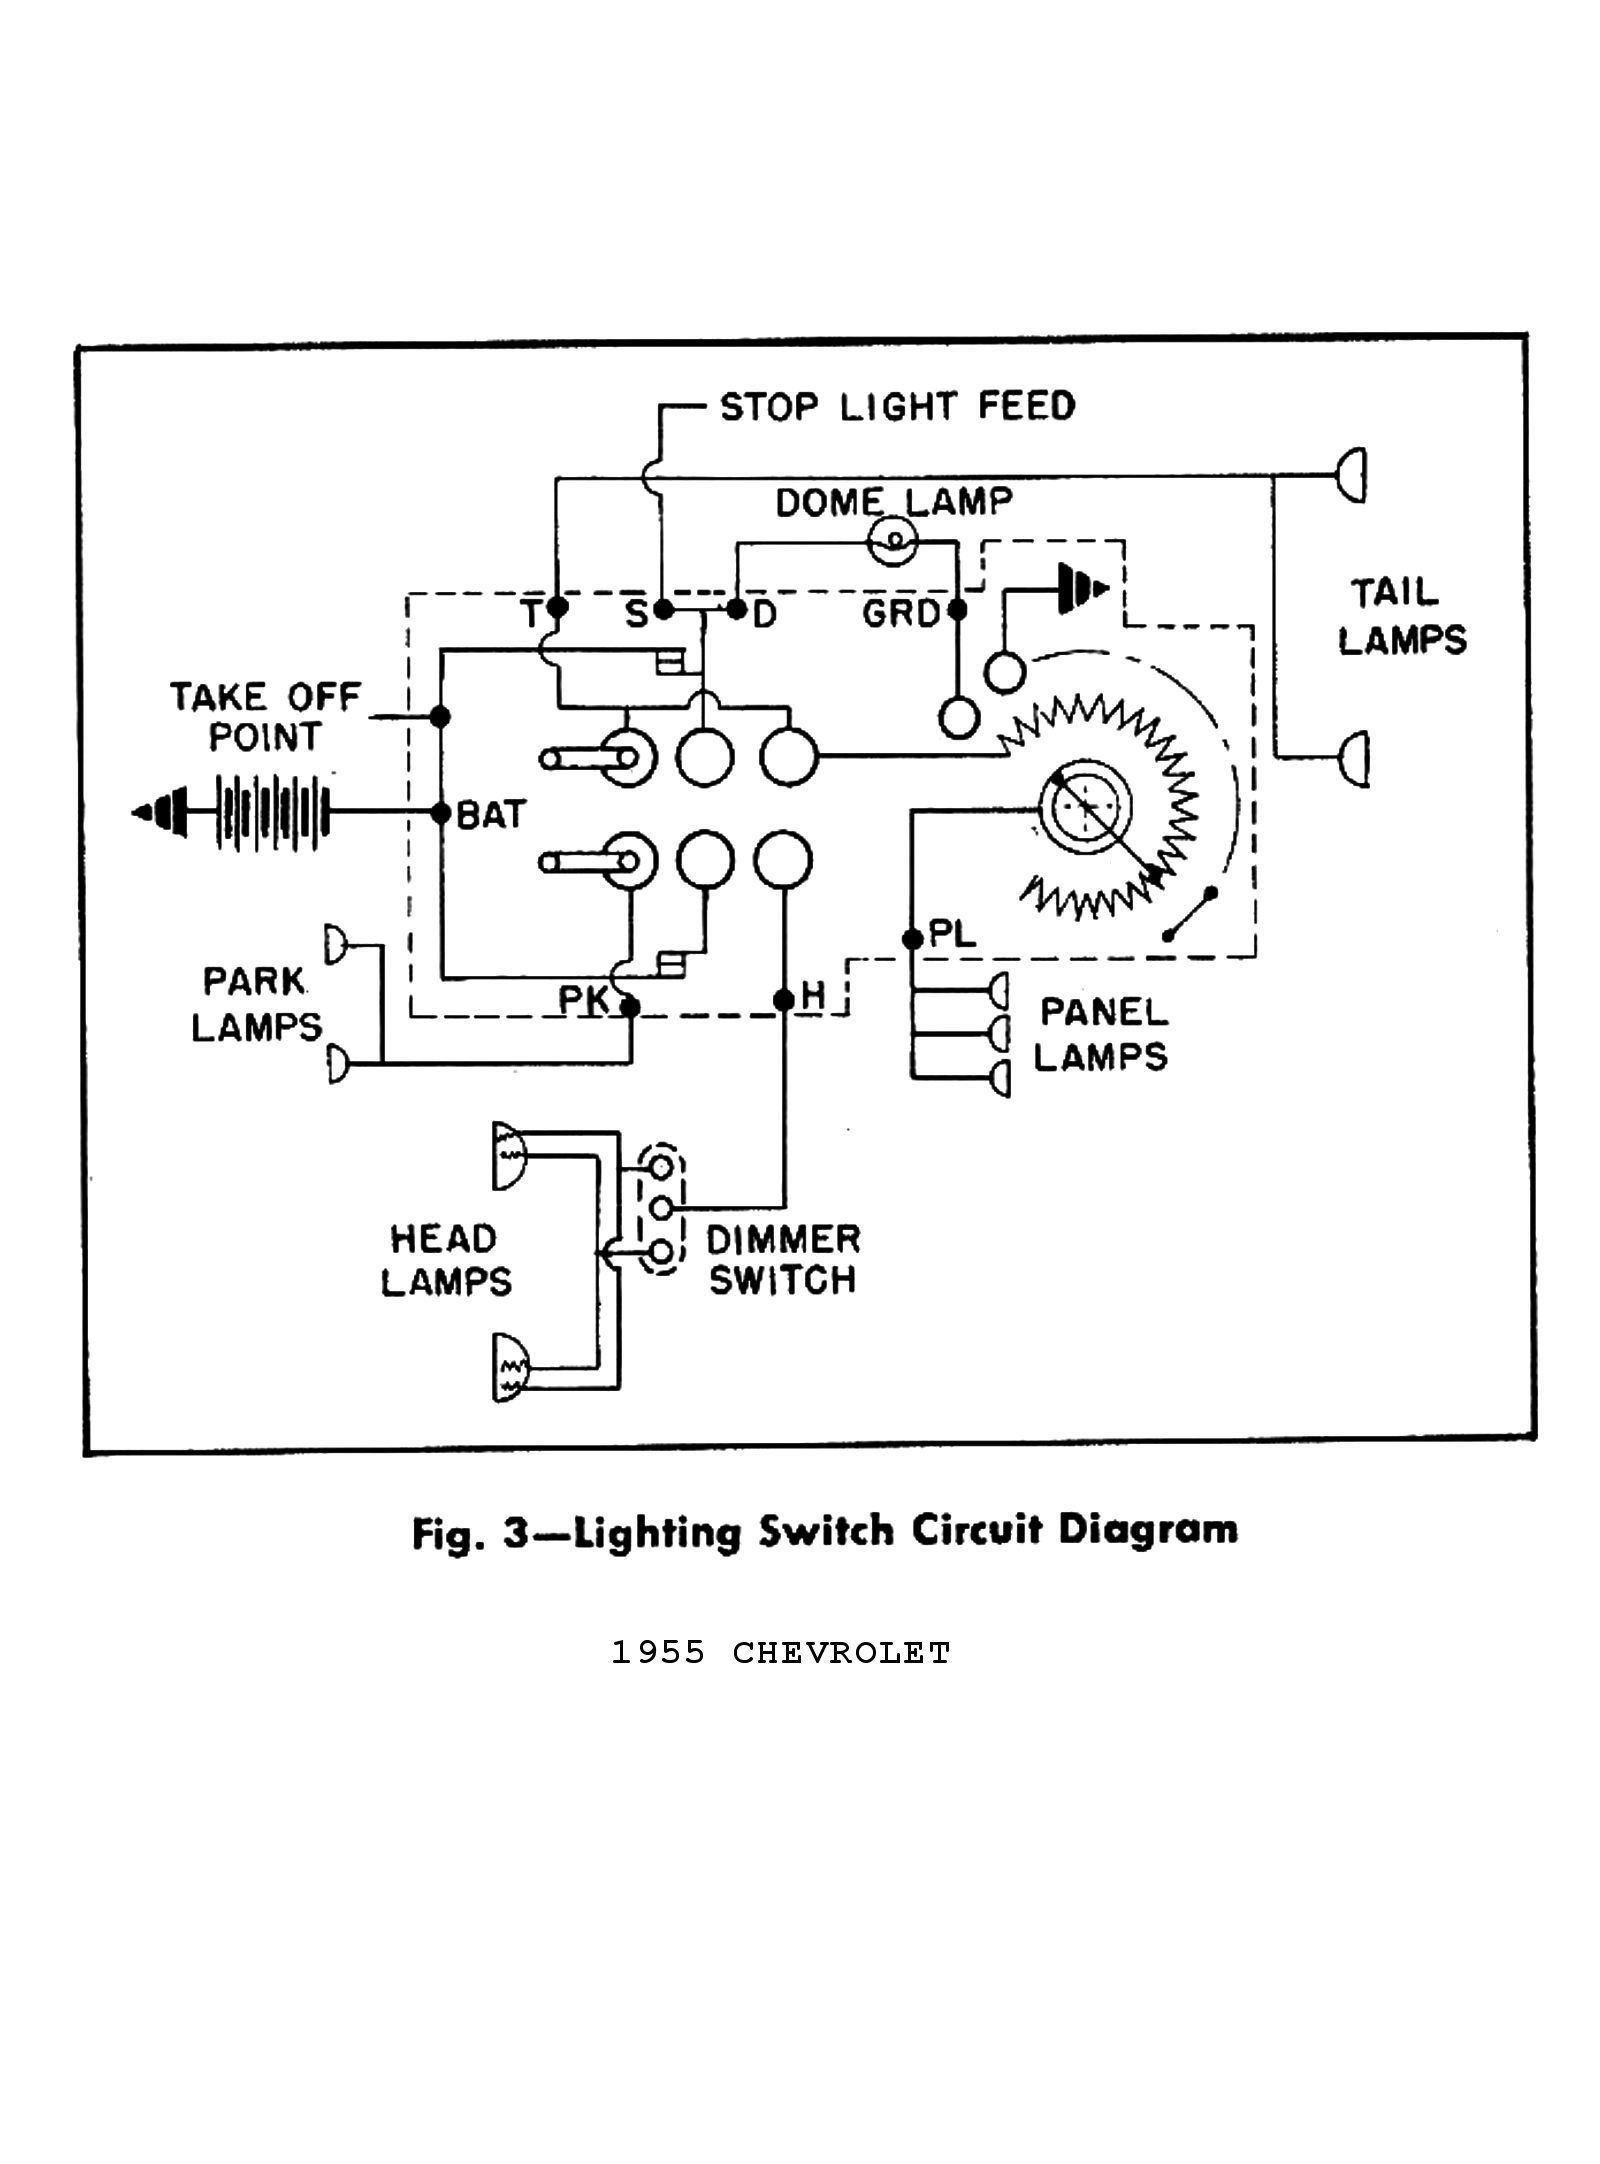 medium resolution of universal ignition switch wiring diagram inspirational 1955 chevy of for 1955 chevy ignition switch wiring diagram